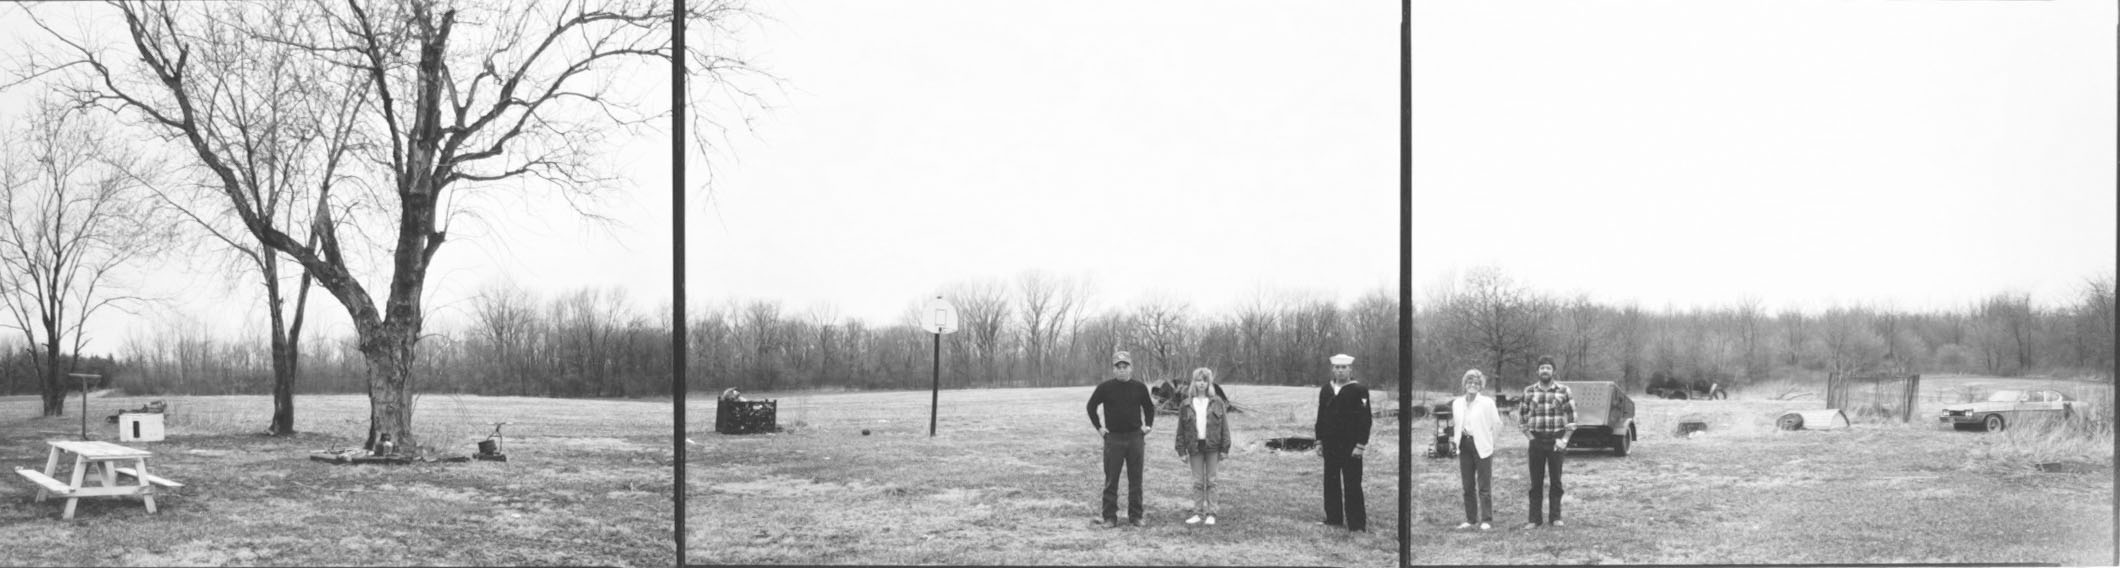 Untitled #1325, from Farm Families Project